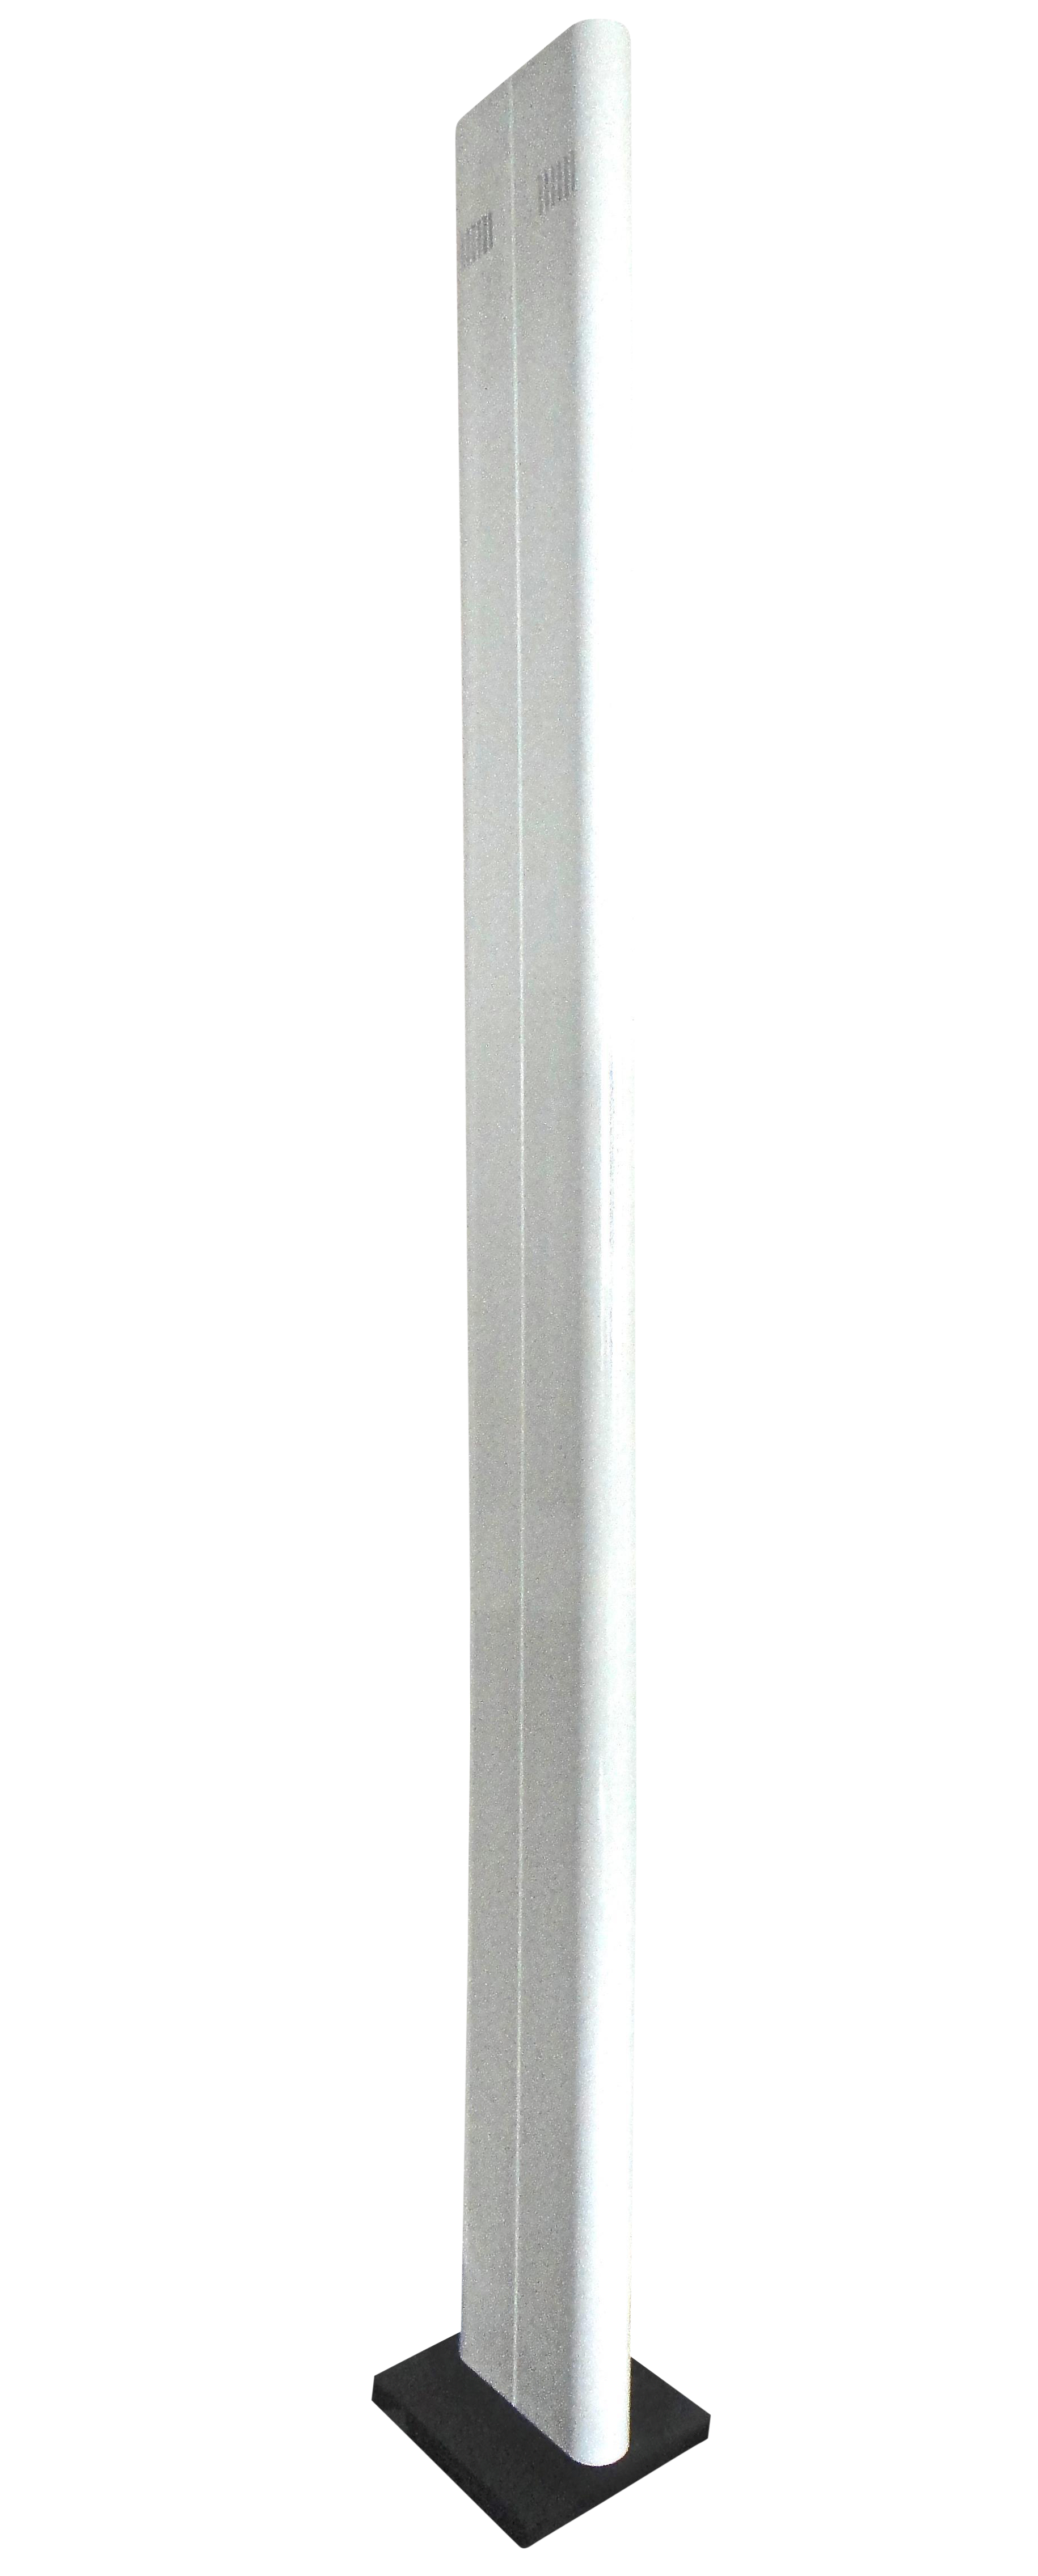 image of ycami collection halogen floor lamp - Halogen Floor Lamp